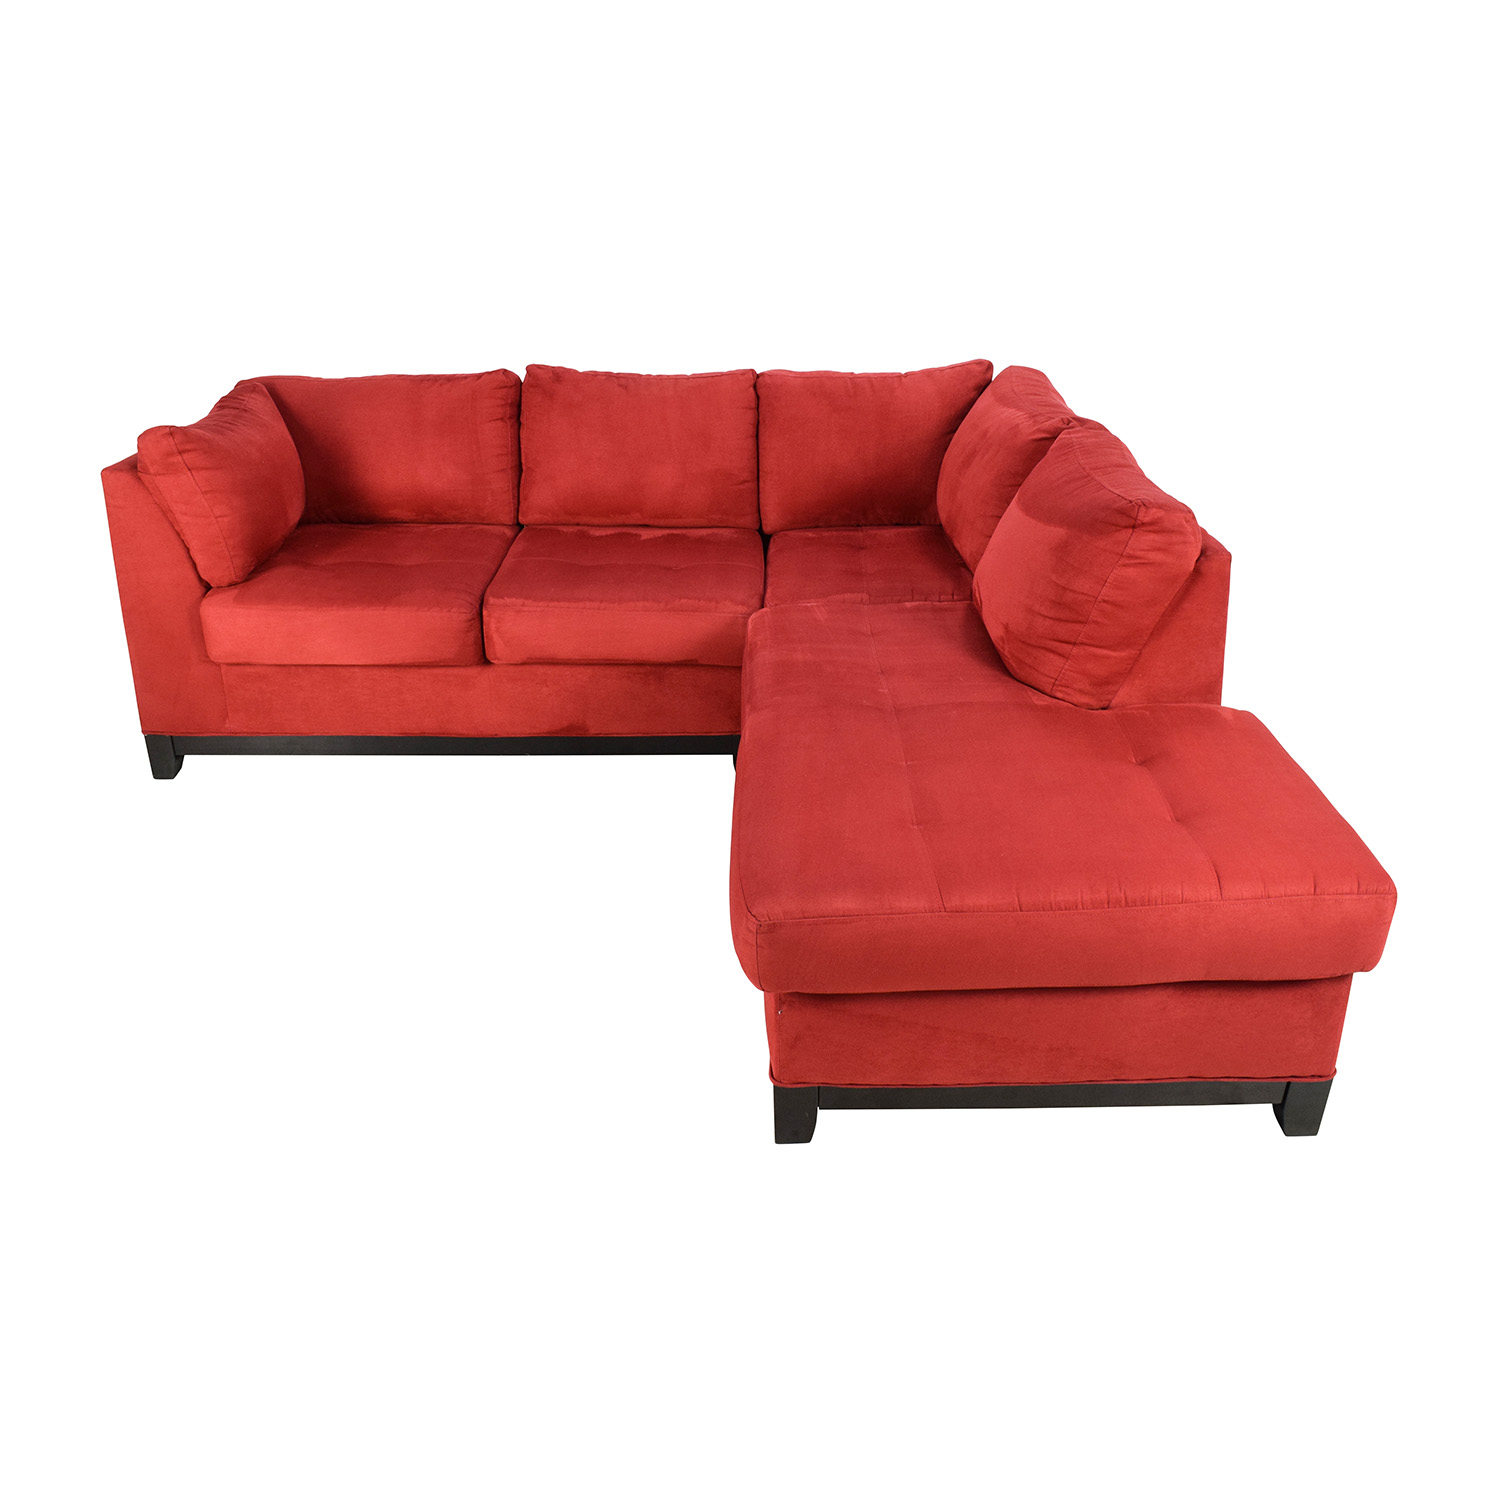 Raymour & Flanigan Zella Red Sectional  sale